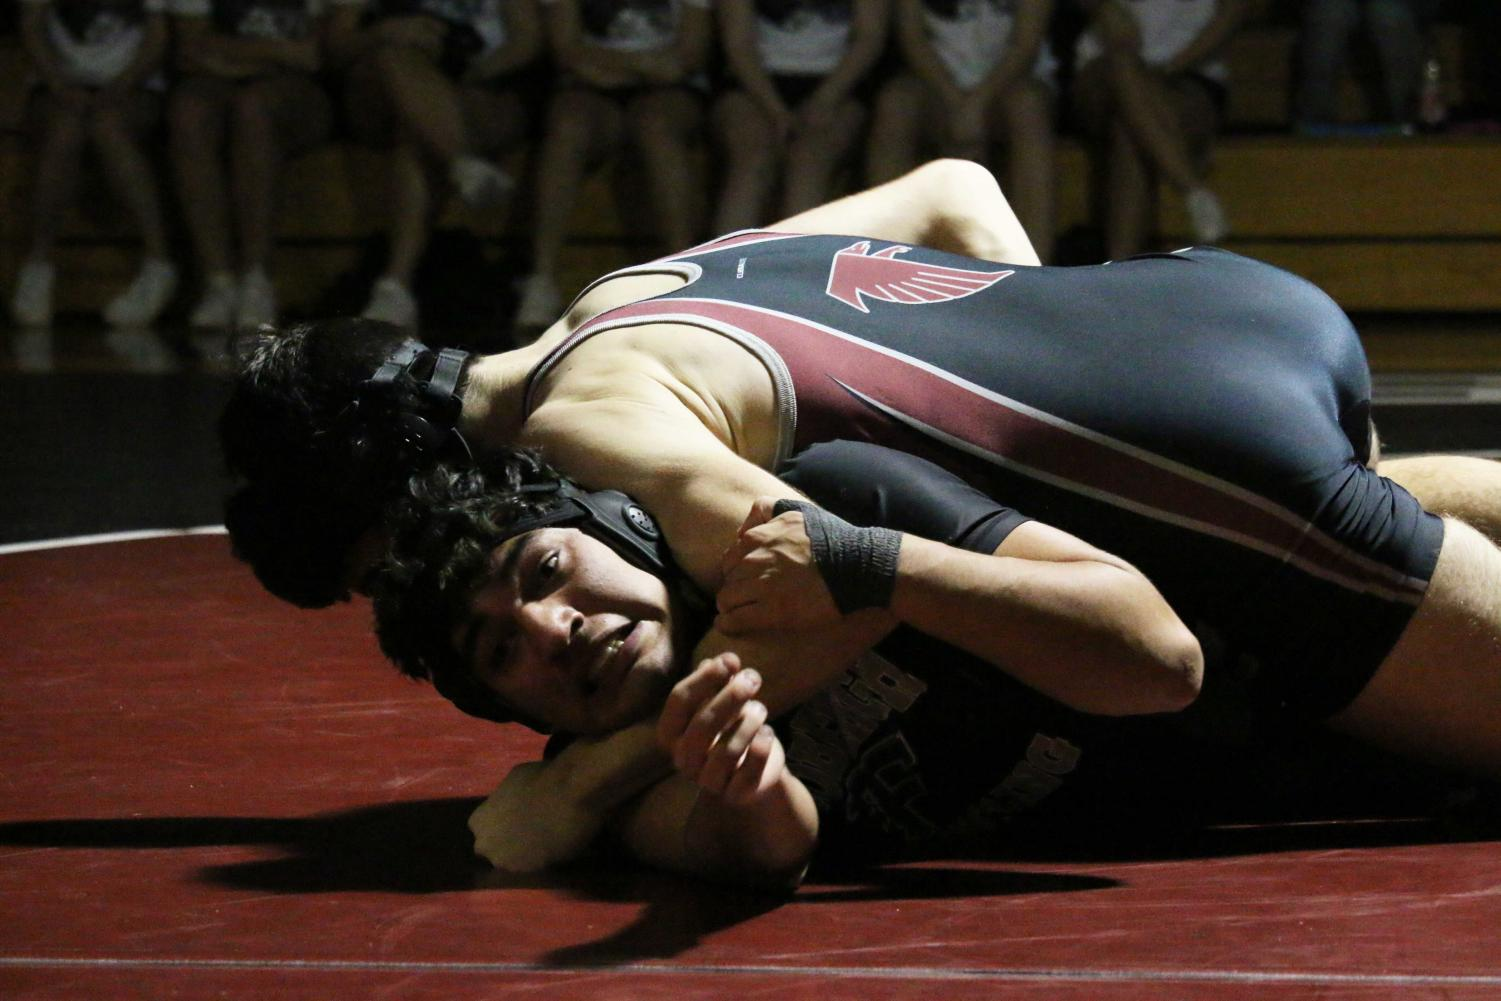 Manuel Ordonez-Webb (11) faces defeat against his opponent from Rockwood Summit.